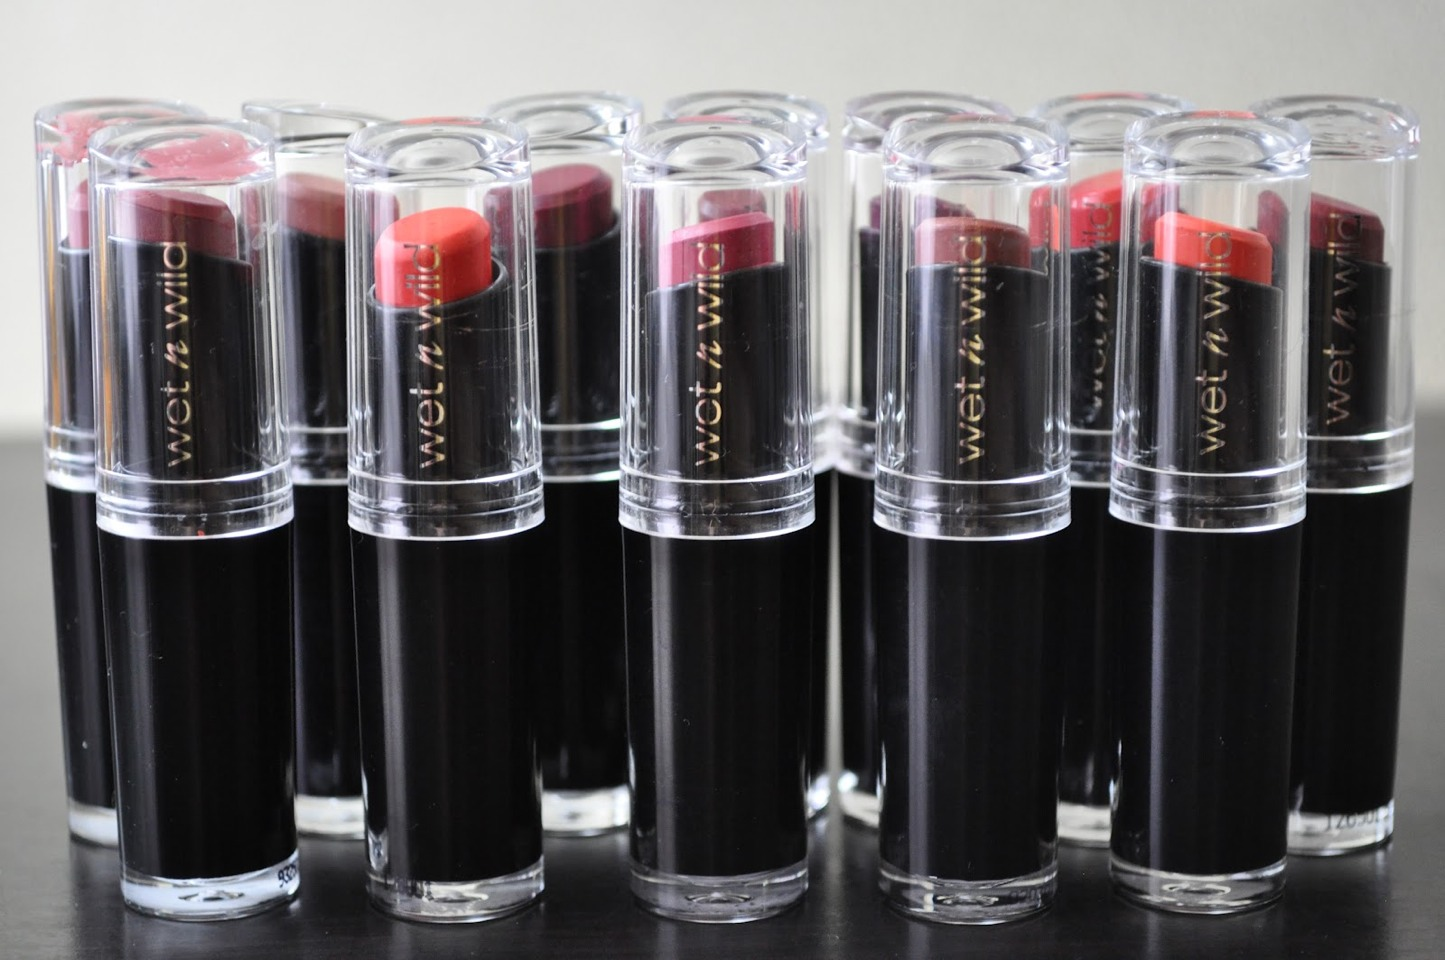 But yeah, they're so pigmented and they last a really long time. I love the pinks and red and the nudes are great, too! So if you're looking for a cheap lipstick, wet n wild is definitely worth it and just a great price.